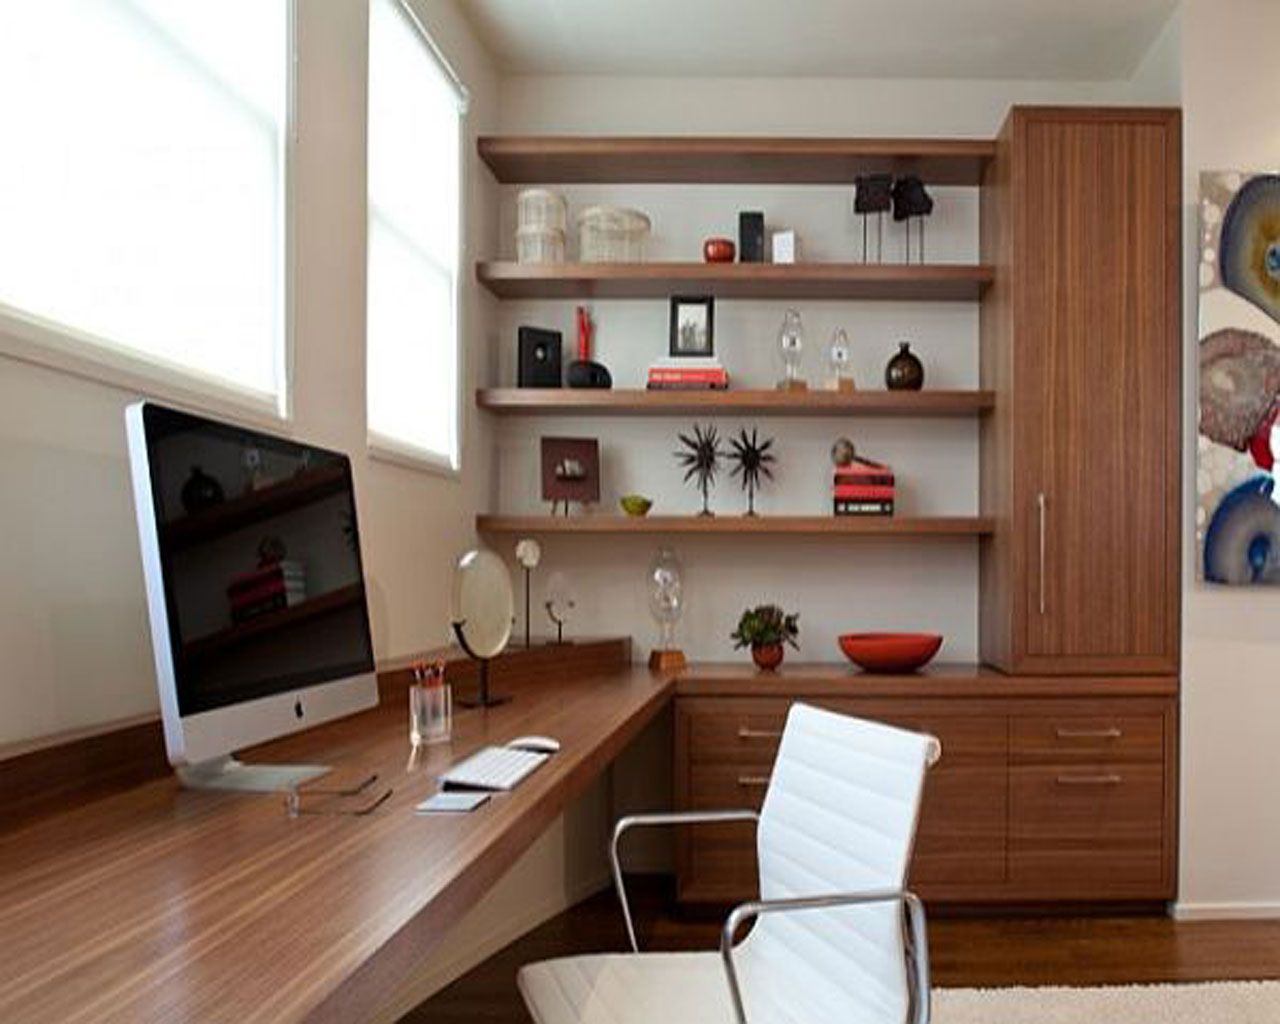 Charming Do You Want To Fit A Small #HomeOffice Into Your Small Home? It Can Idea